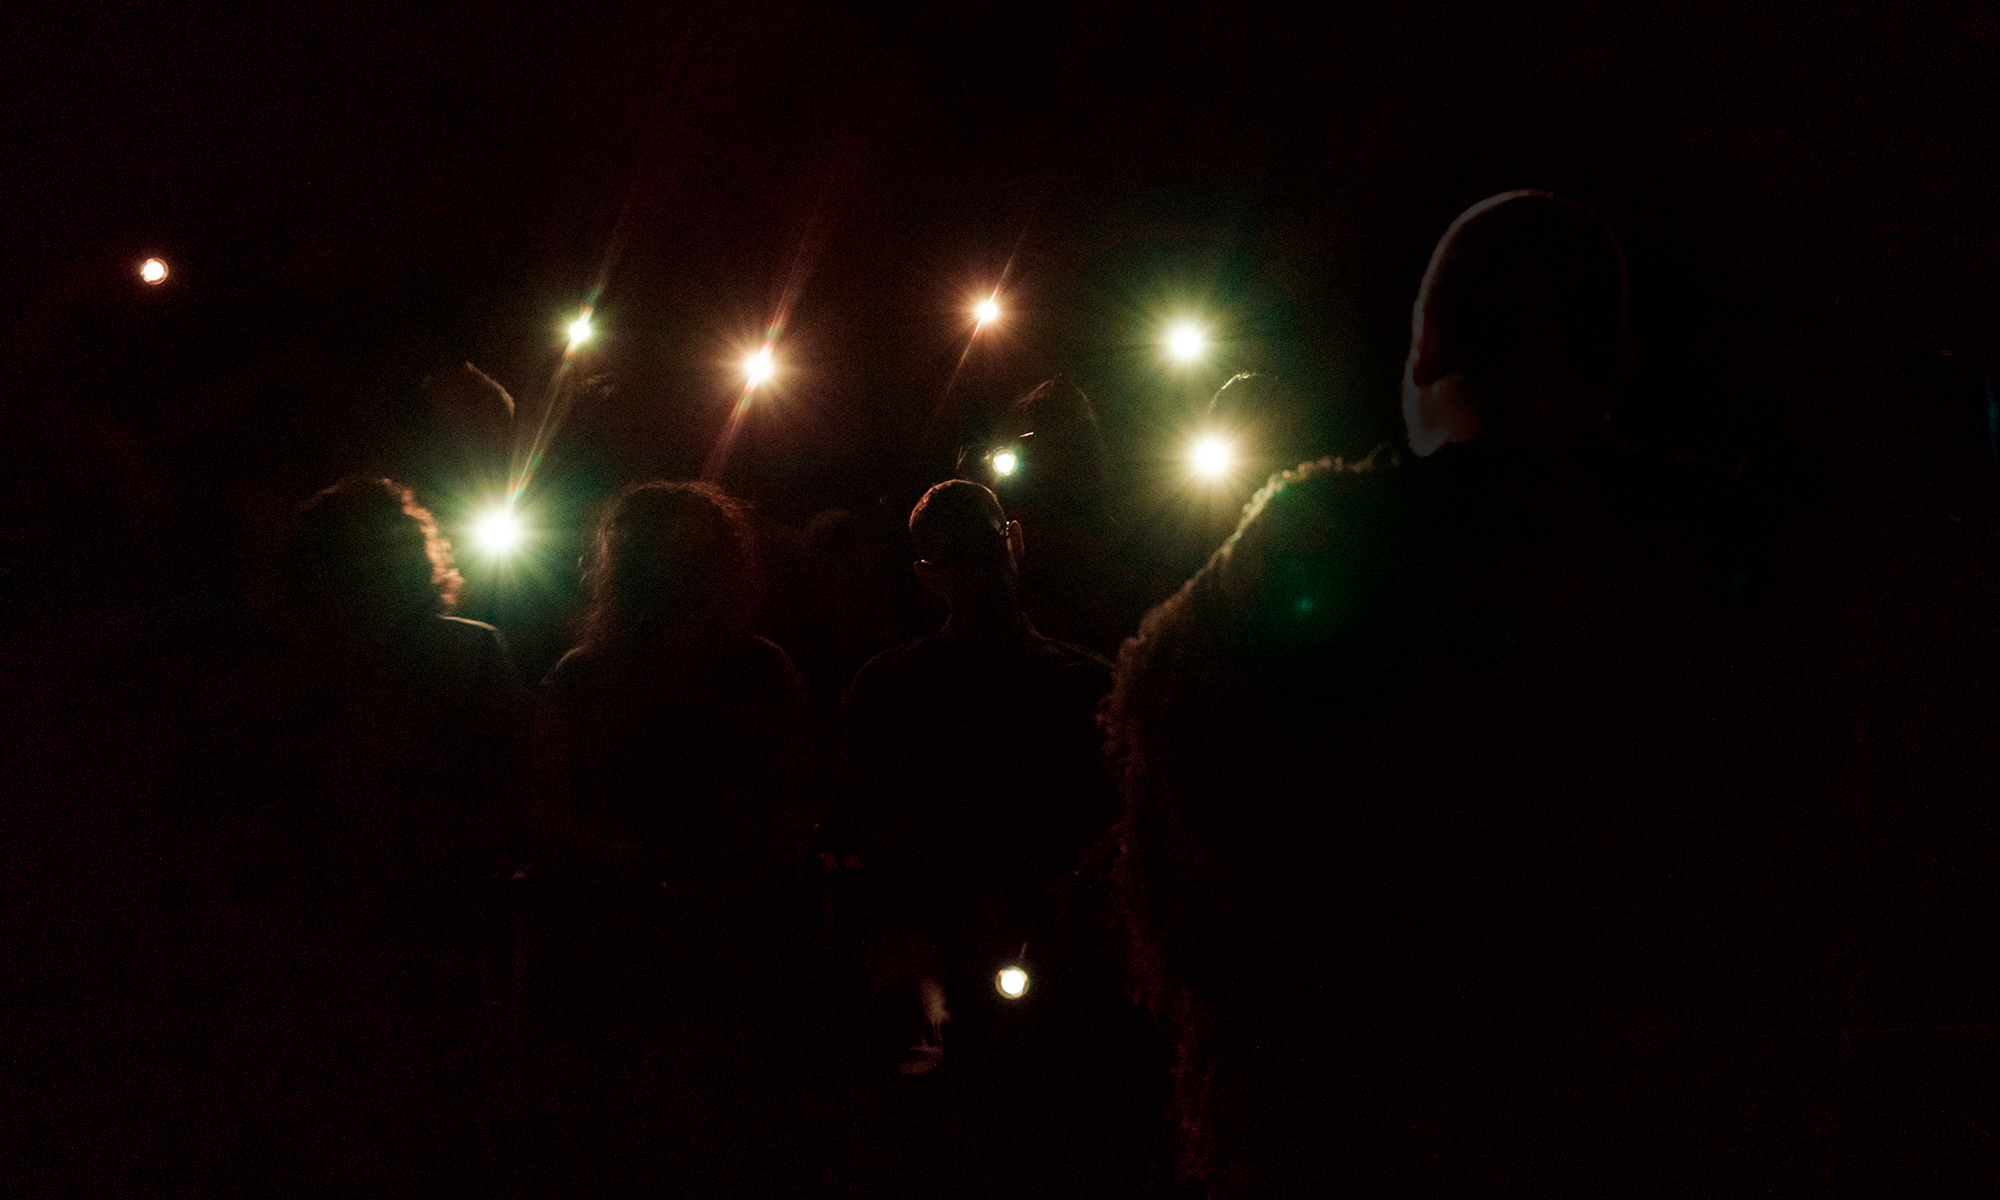 audience in darkness, except for flashlights